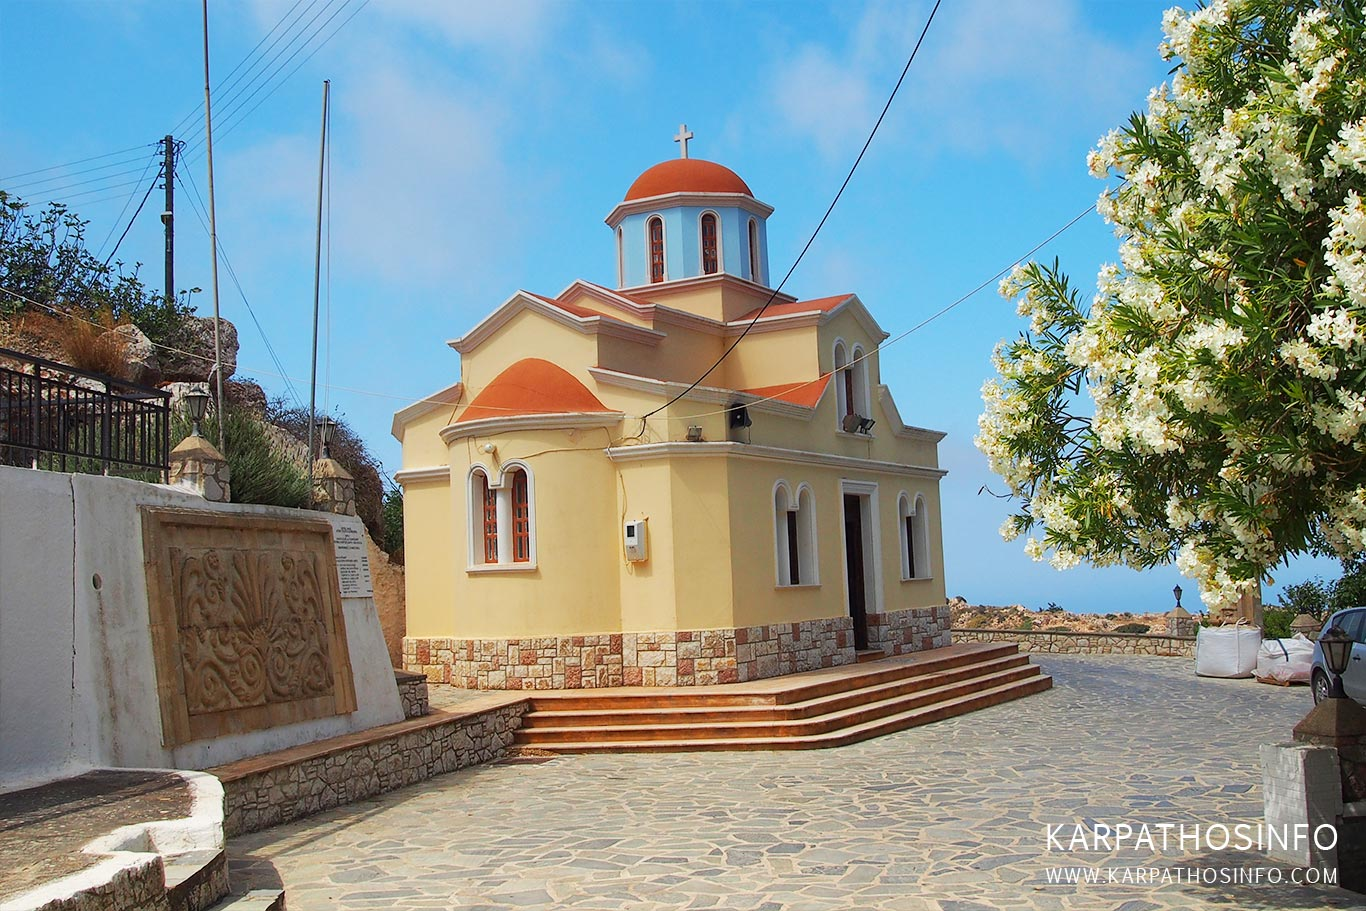 Stes church Karpathos